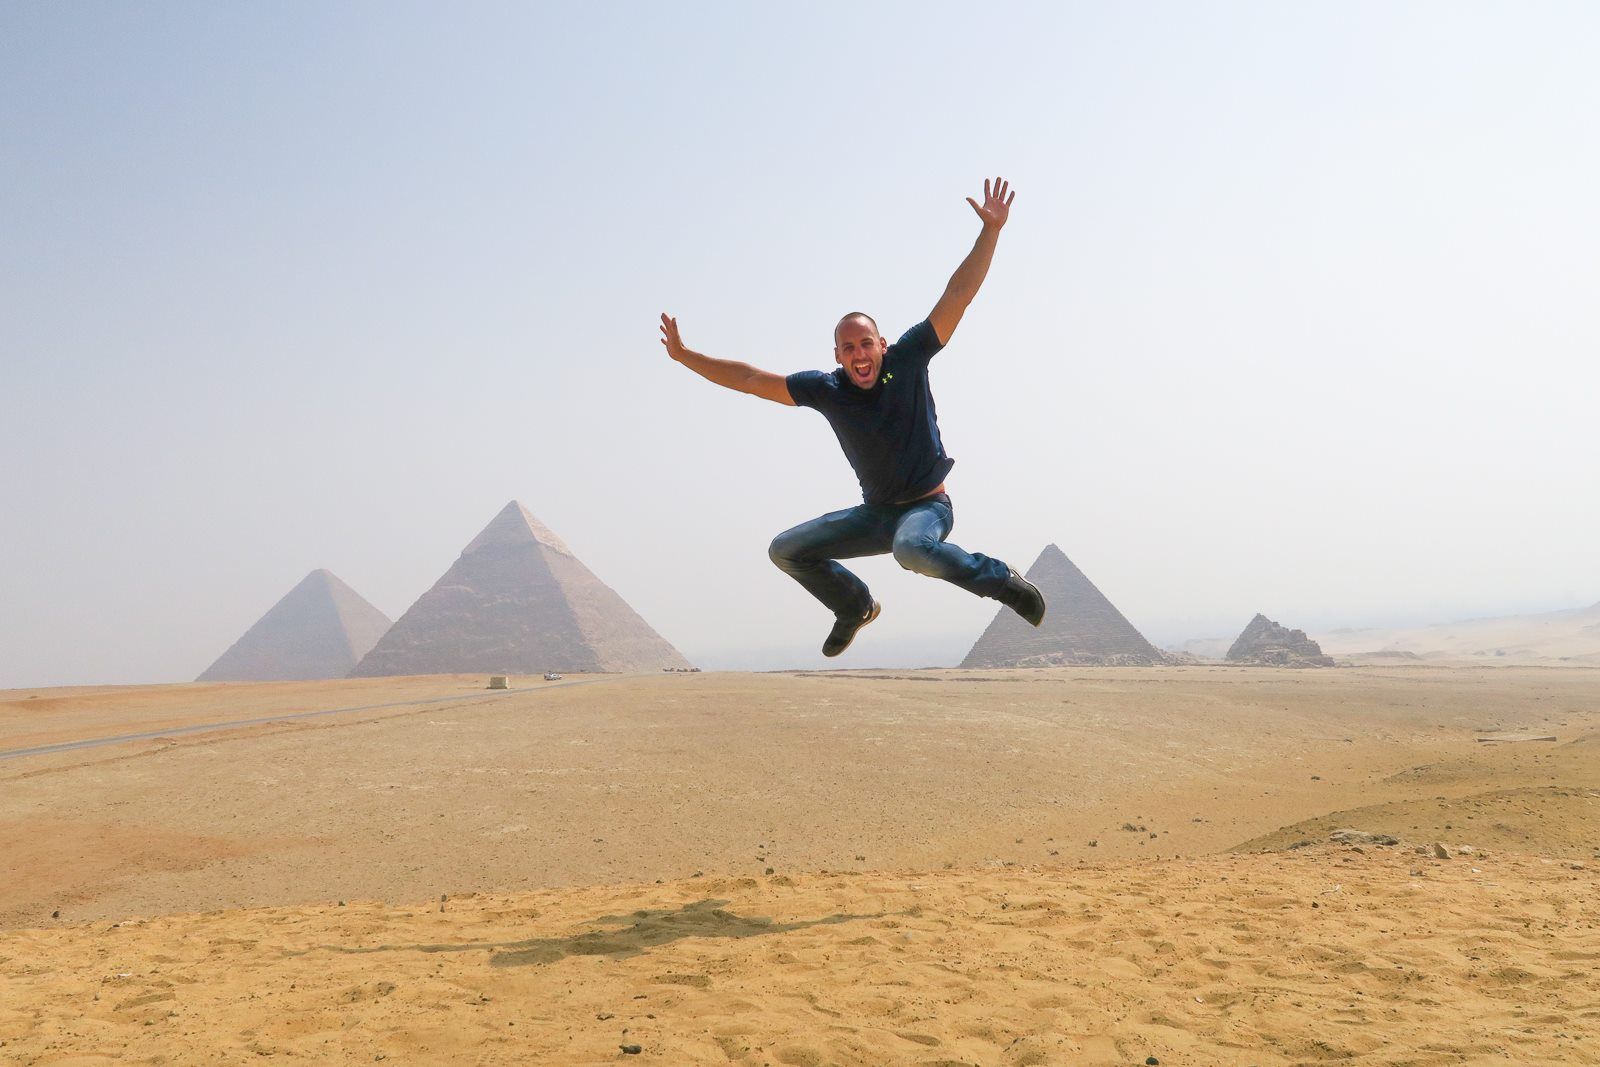 Expedition Egypt Tour October 2017!